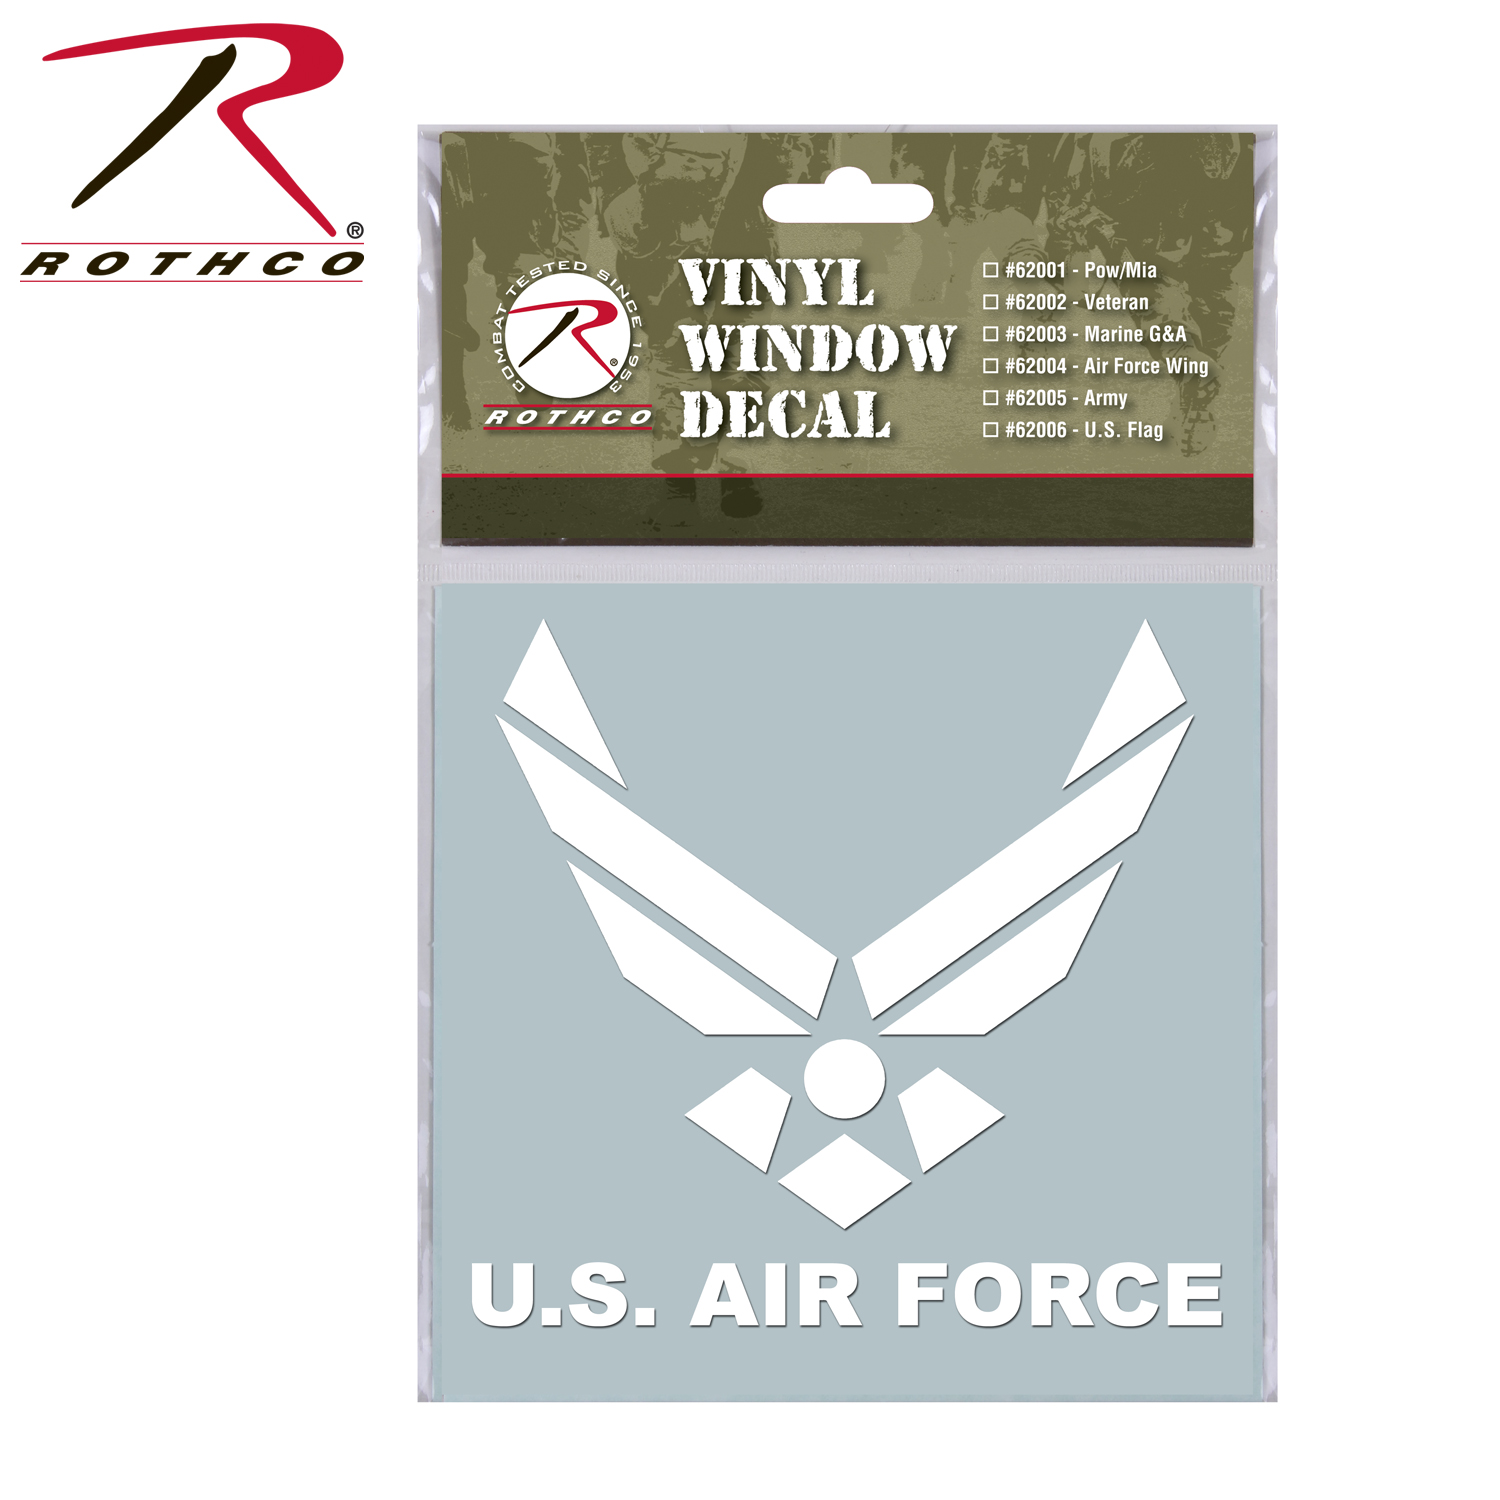 Rothco Military Vinyl Window Decal - Military window decals for cars